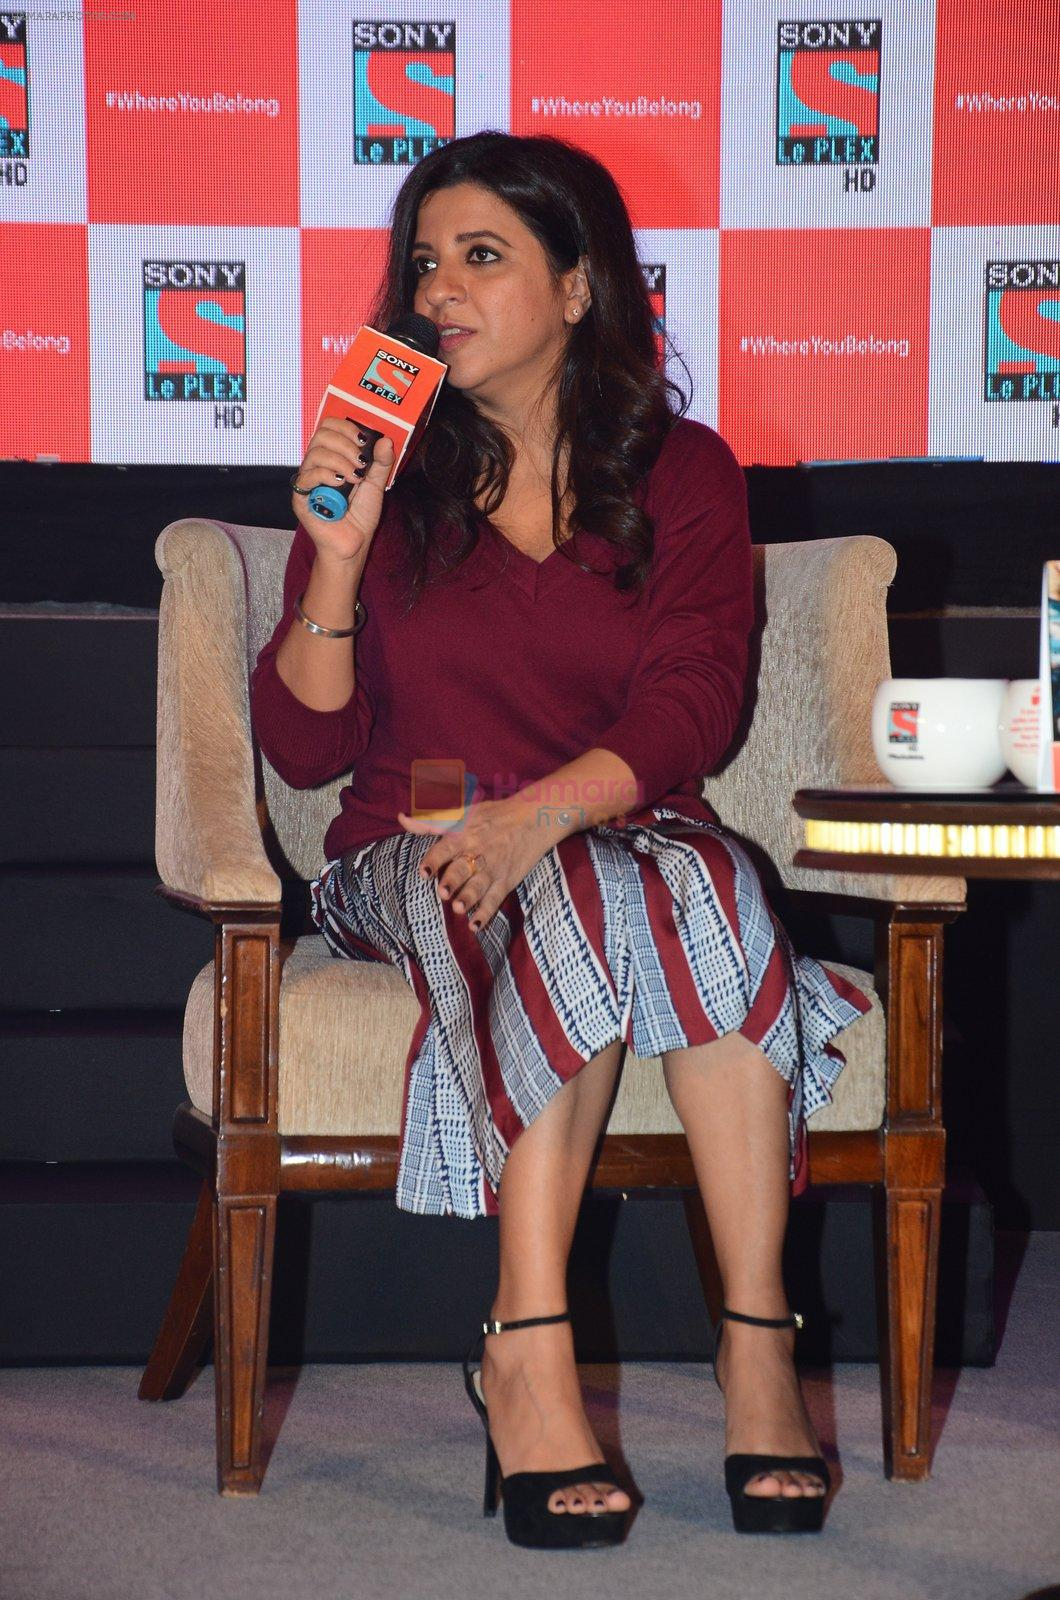 Zoya Akhtar at the launch of English movie channel Sony Le PLEX HD in Mumbai on 23rd Aug 2016